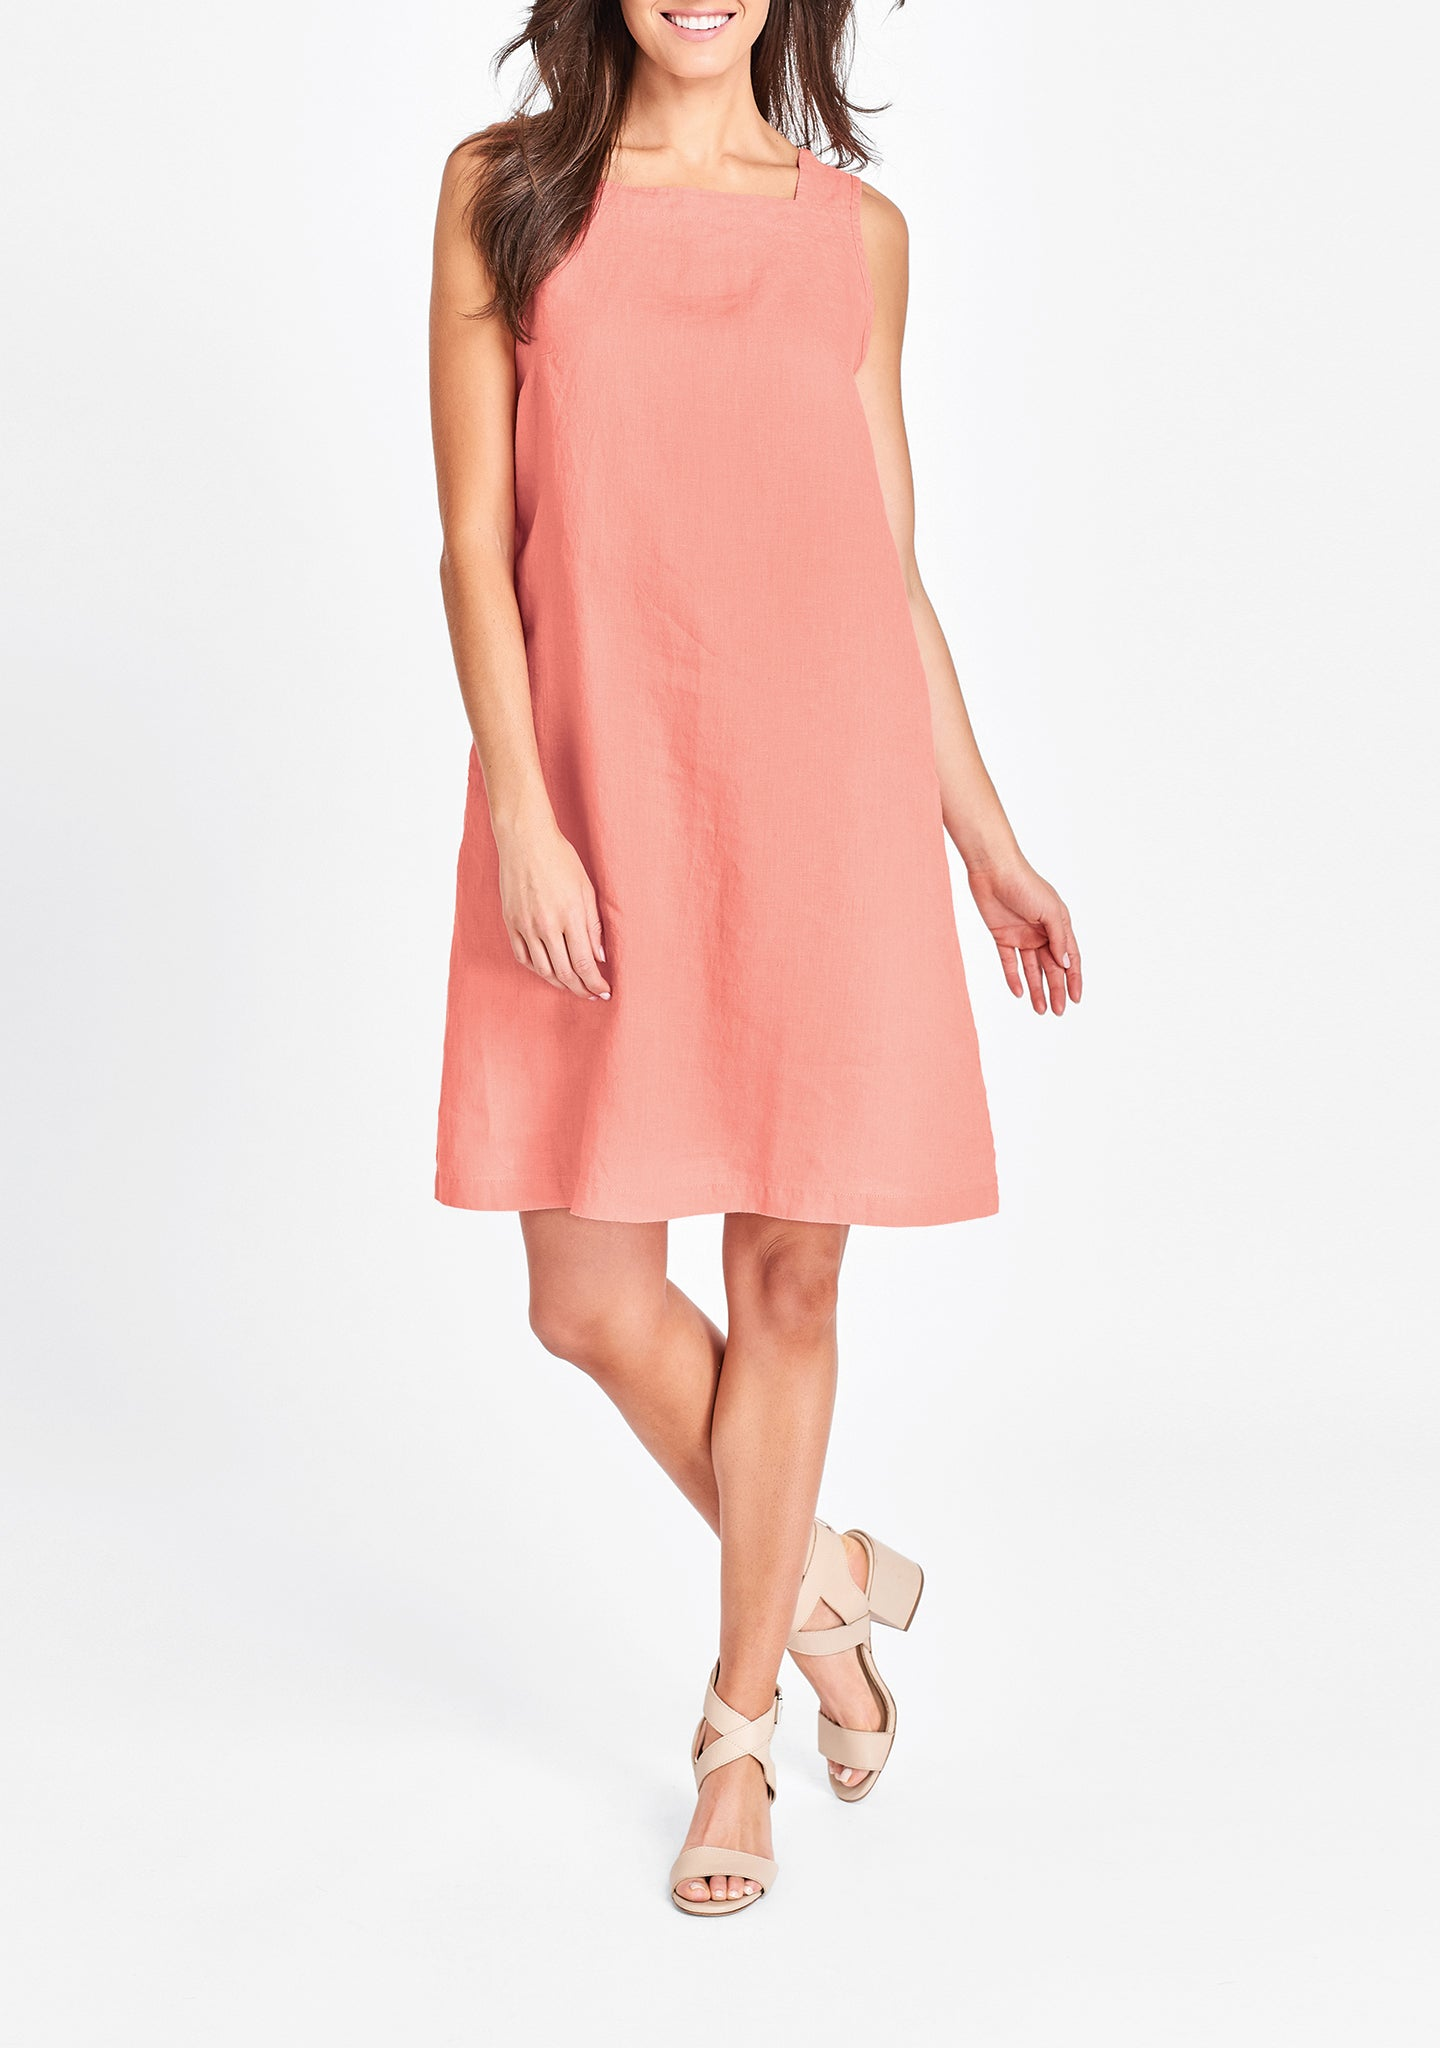 square neck dress pink